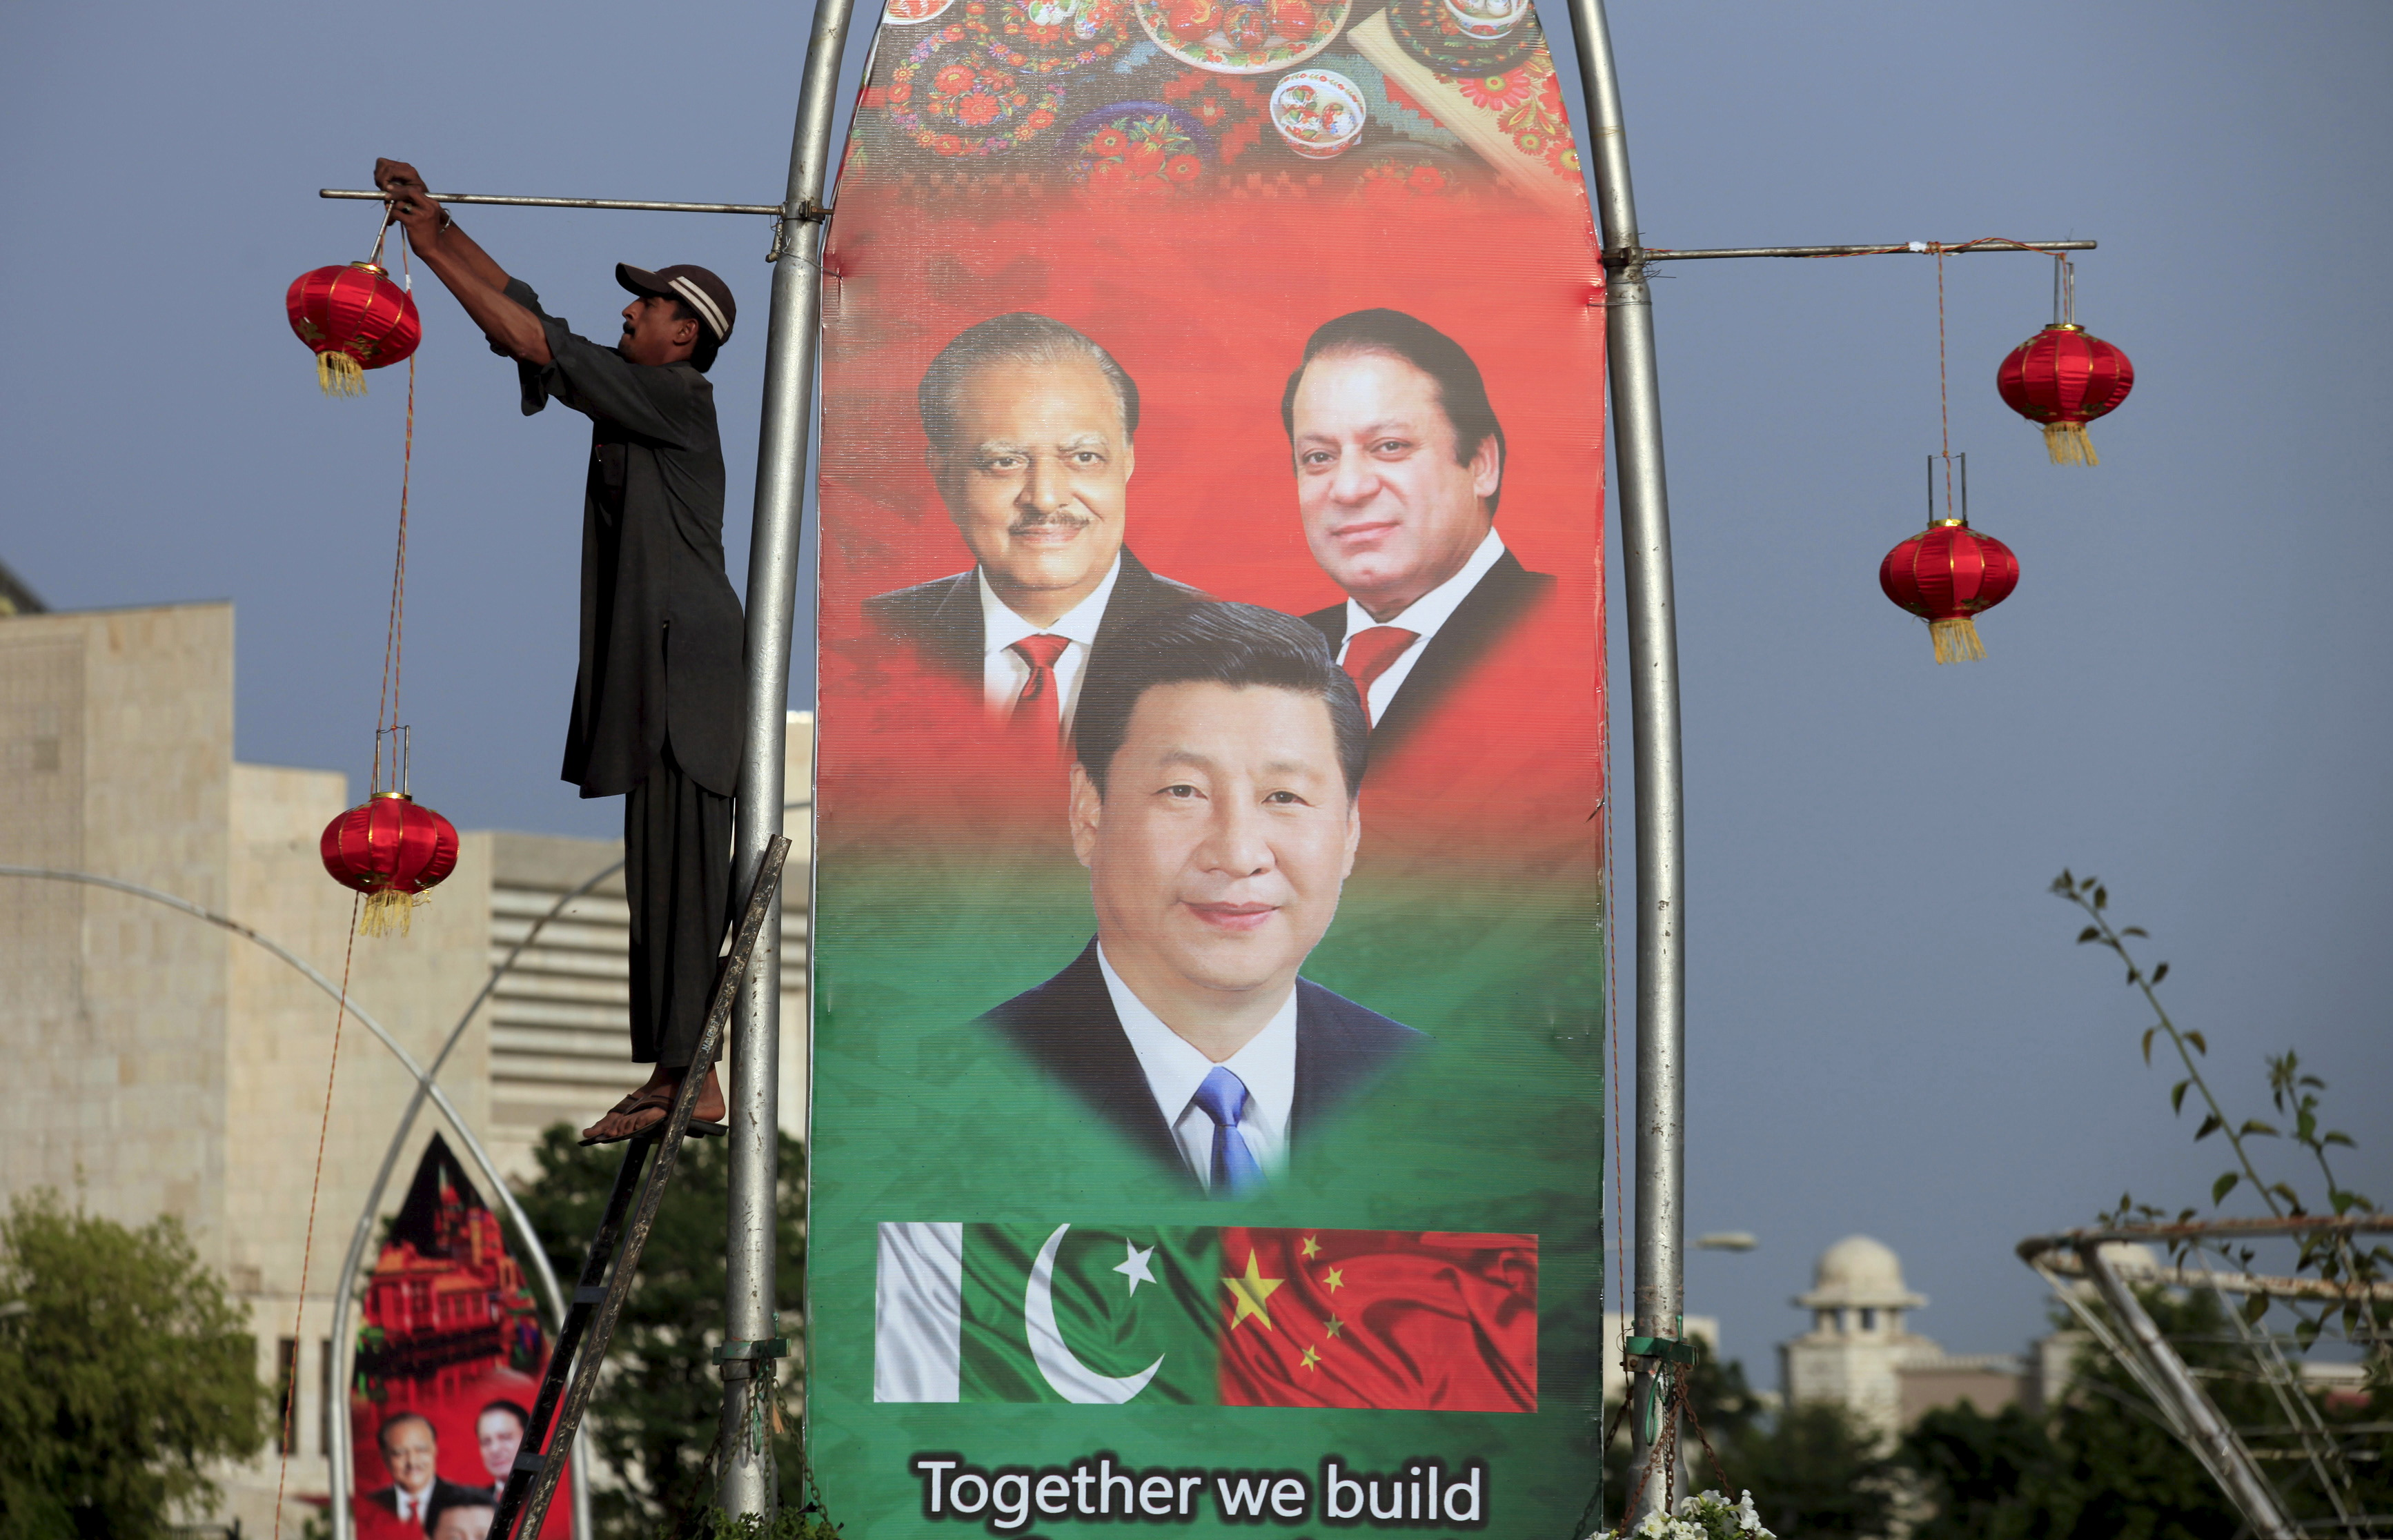 A man hangs decorations on a pole next to a banner showing, clockwise from top left, Pakistani President Mamnoon Hussain, Pakistani Prime Minister Nawaz Sharif and  Chinese President Xi Jinping, on April 19, 2015, ahead of Xi's visit to Islamabad